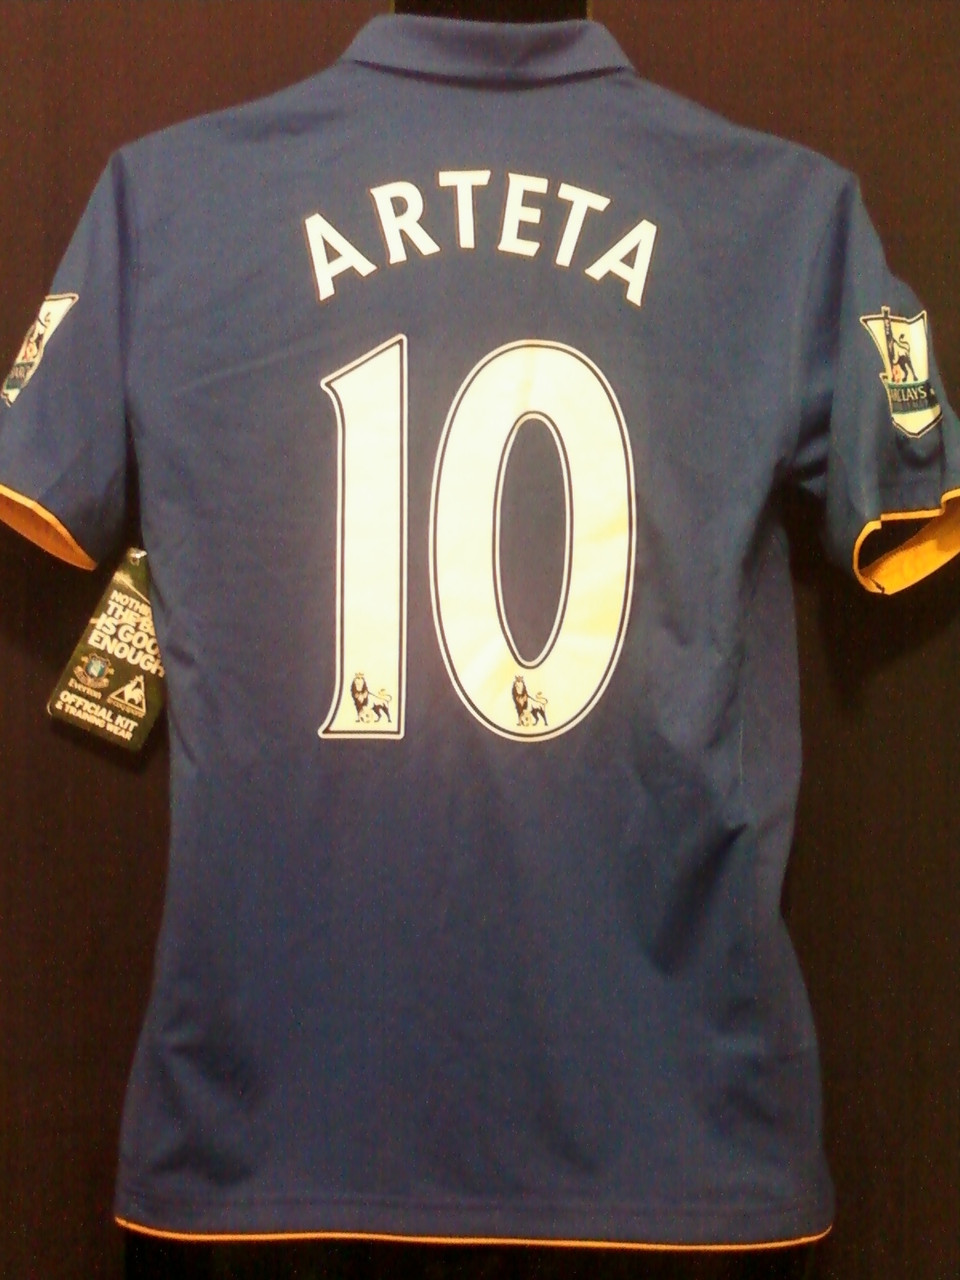 2b0a0bc72 ARTETA EVERTON 2011 2012 HOME ROYAL JERSEY WITH FELT EPL PATCHES ...